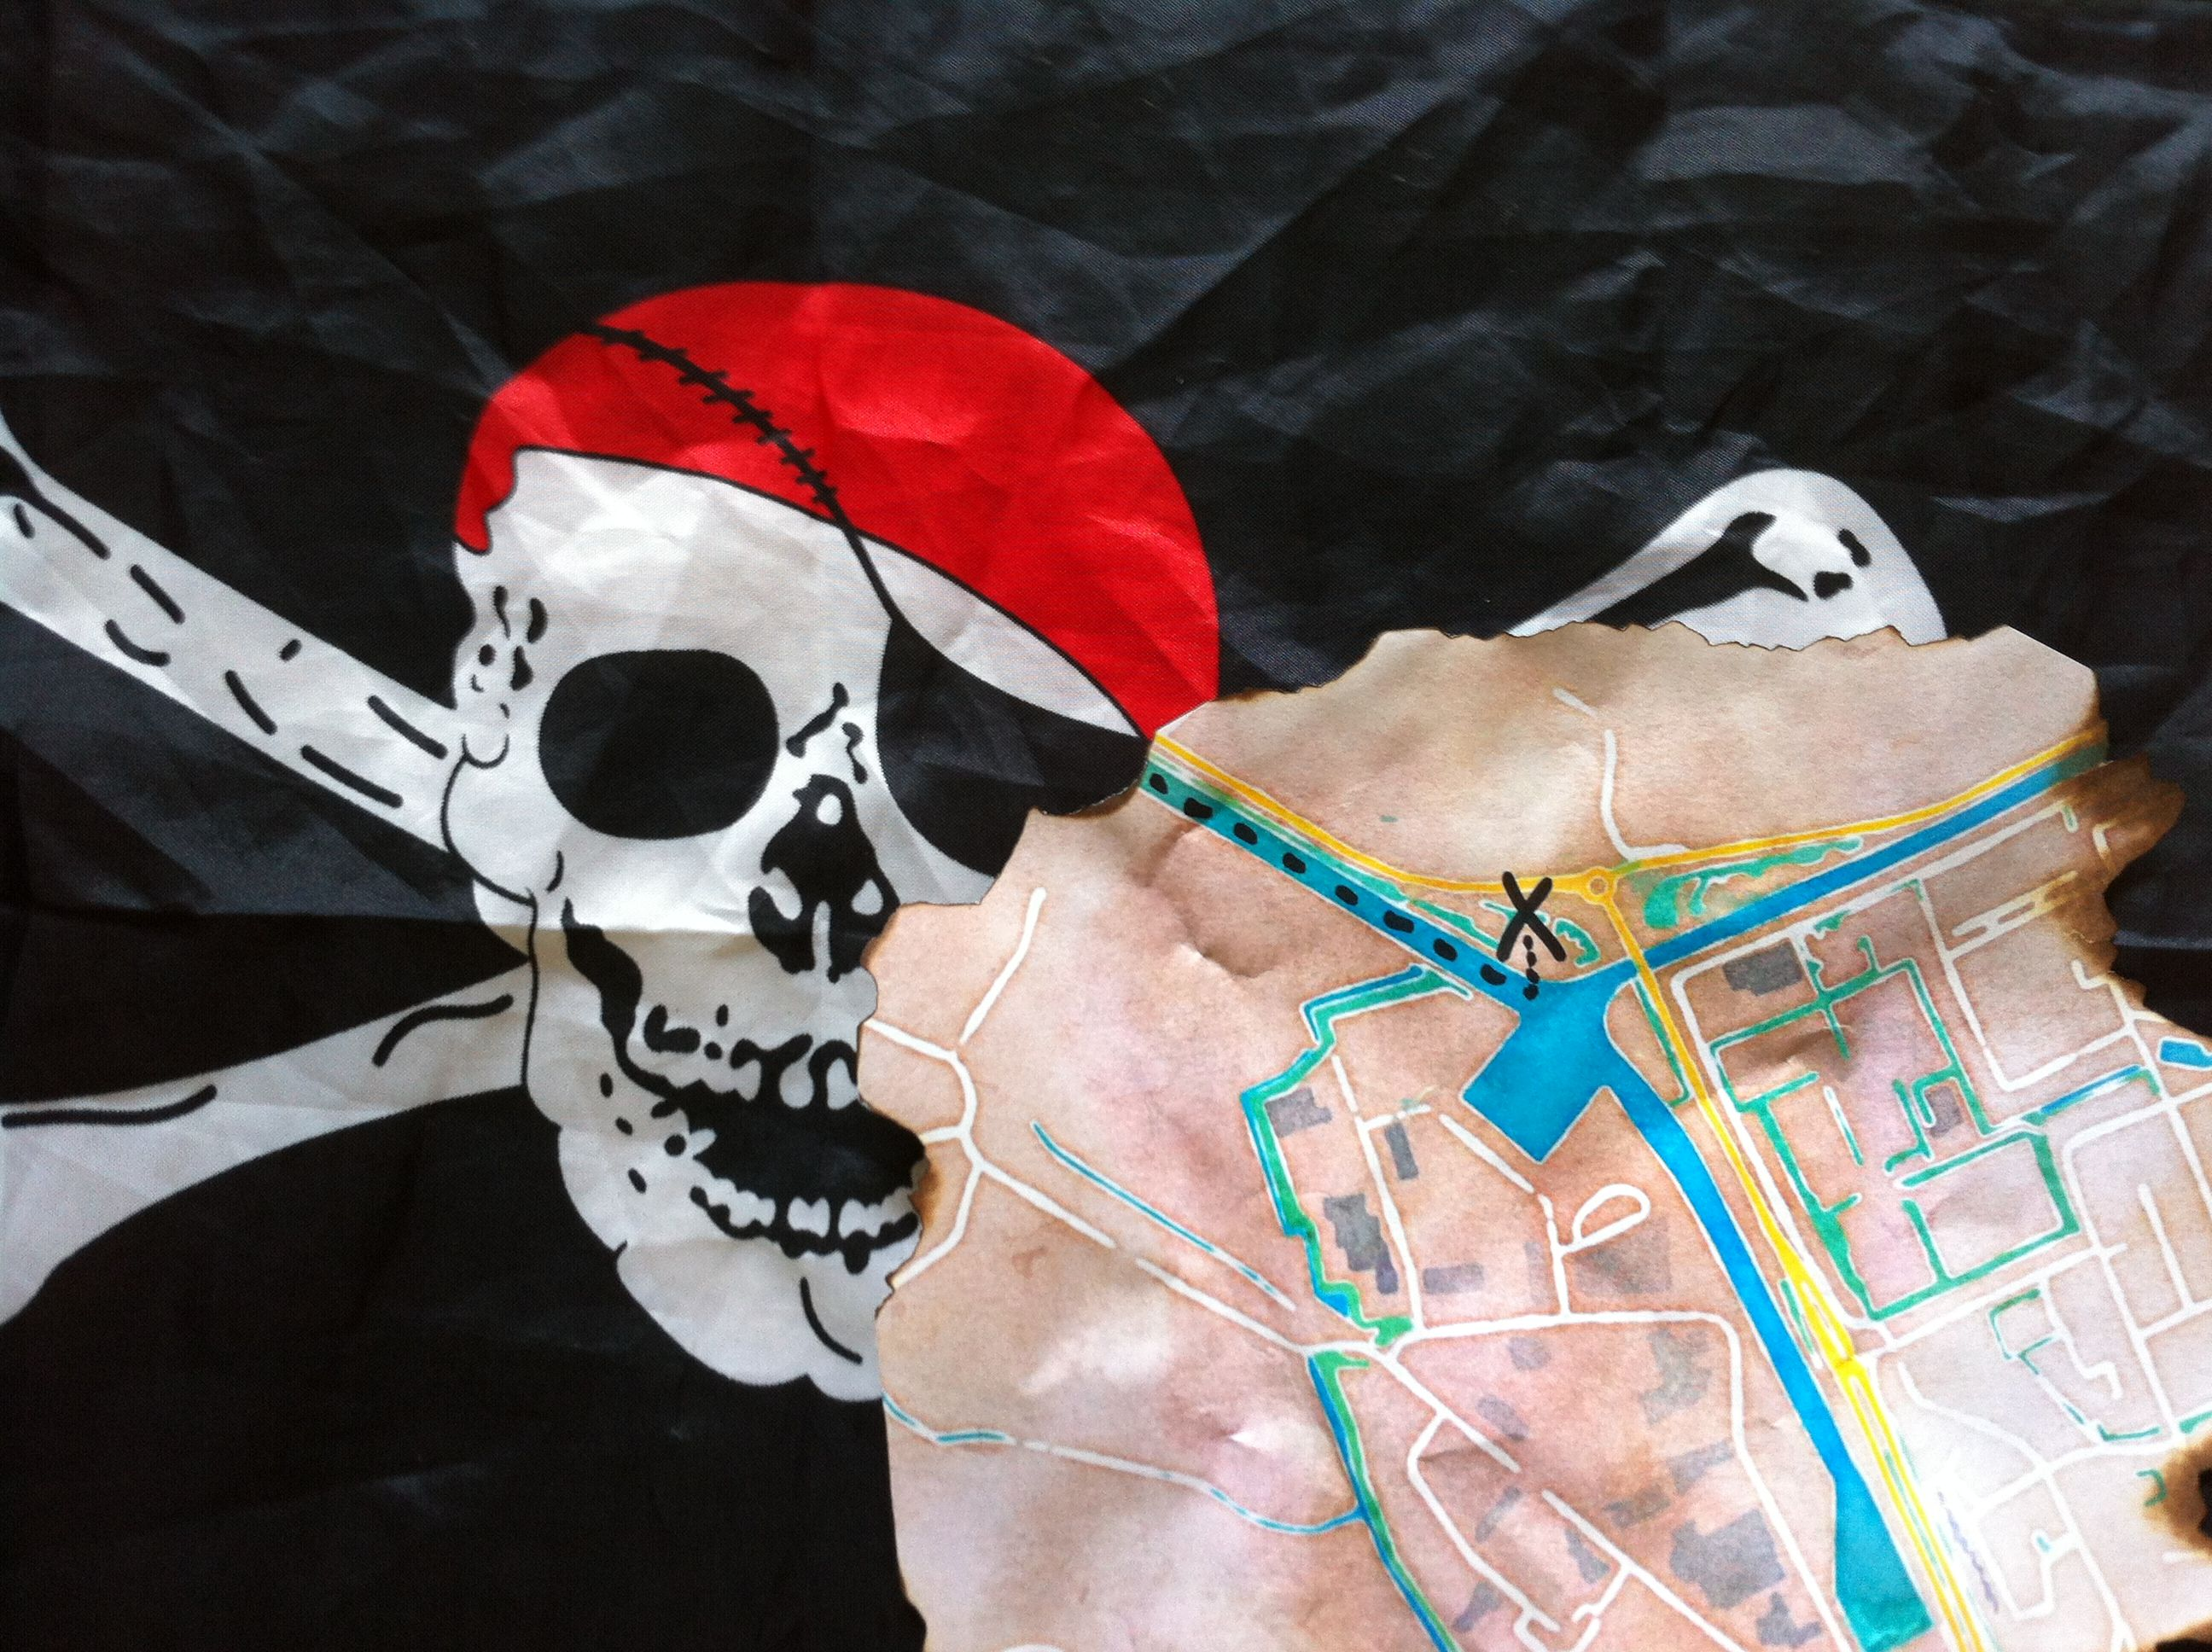 @Henk Poley made a pirate map!